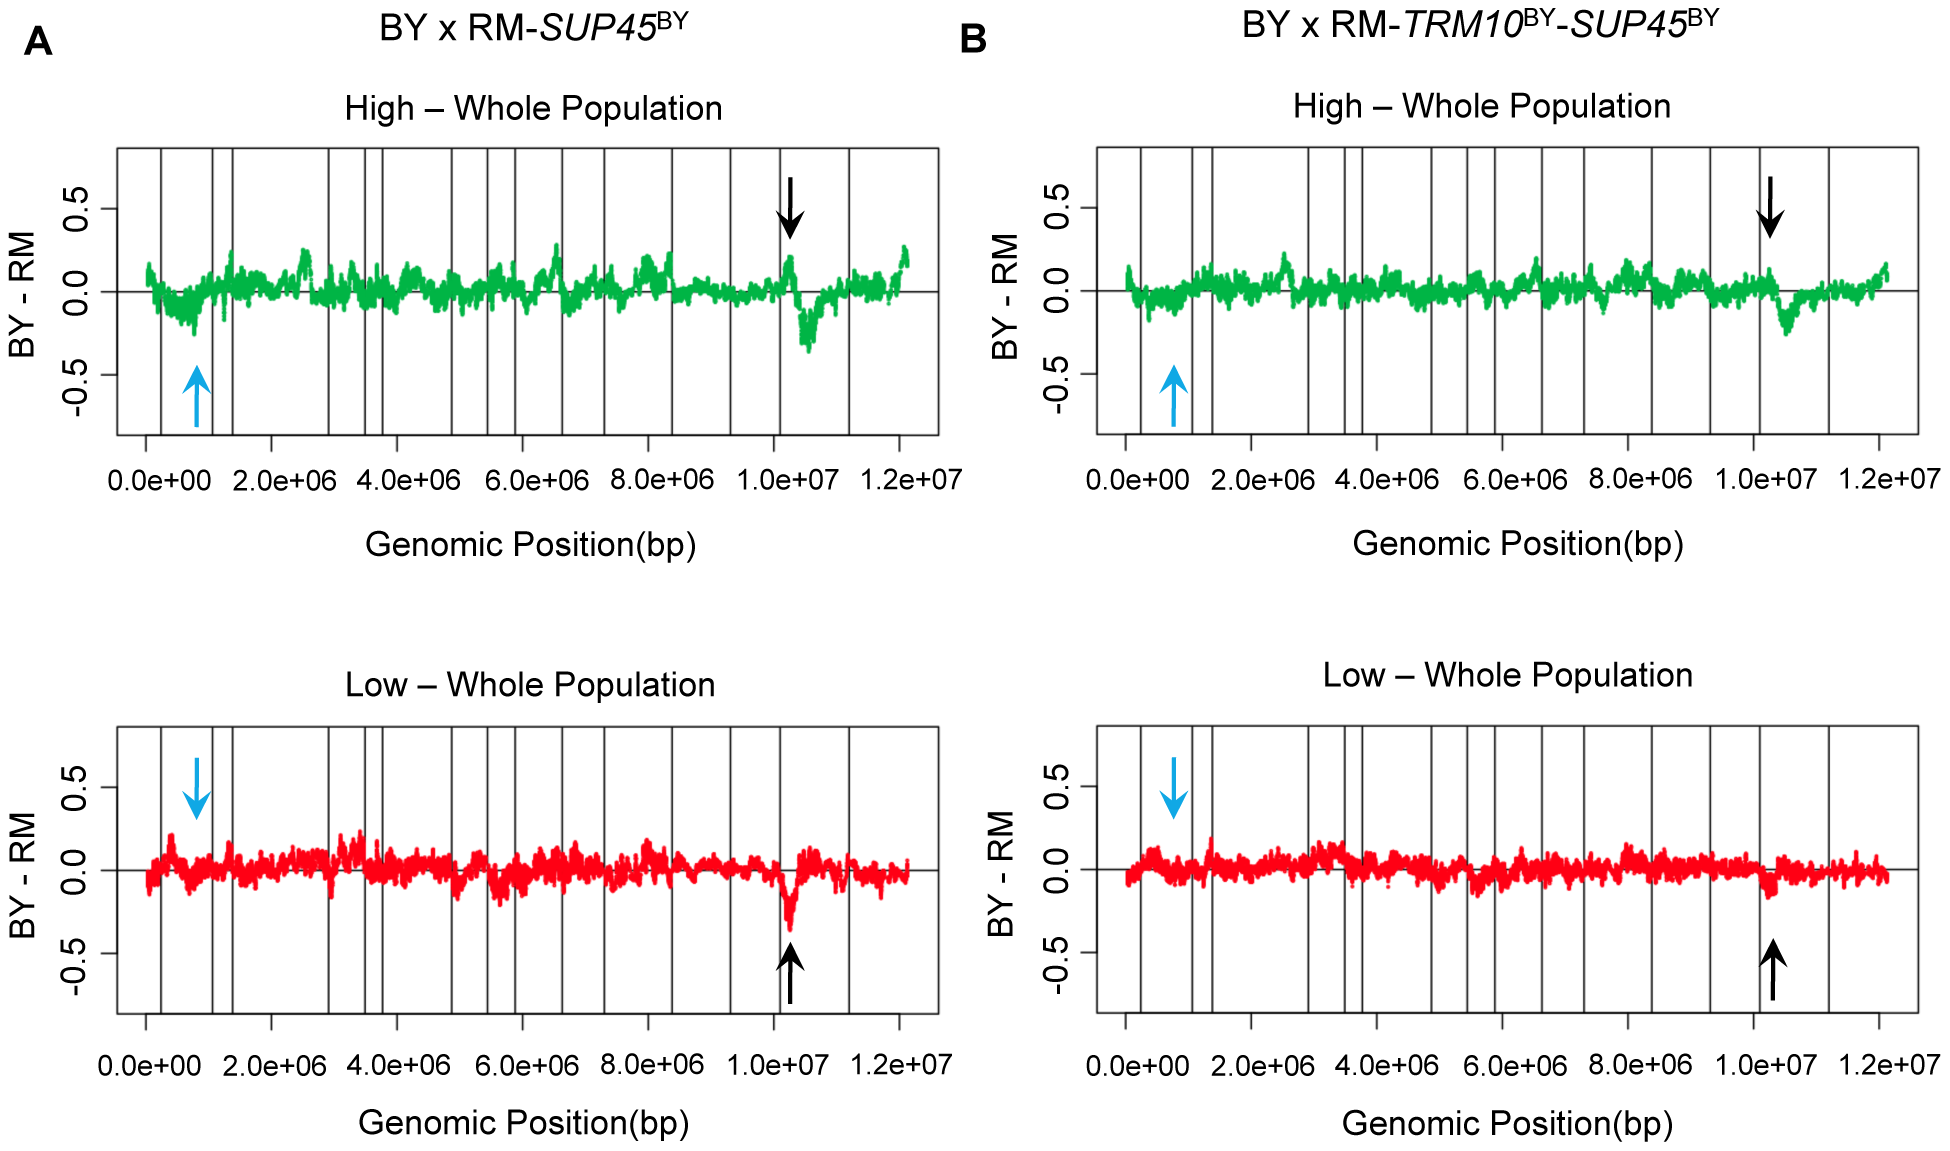 Polymorphisms in <i>TRM10</i> and <i>SUP45</i> explain readthrough difference between BY and RM.